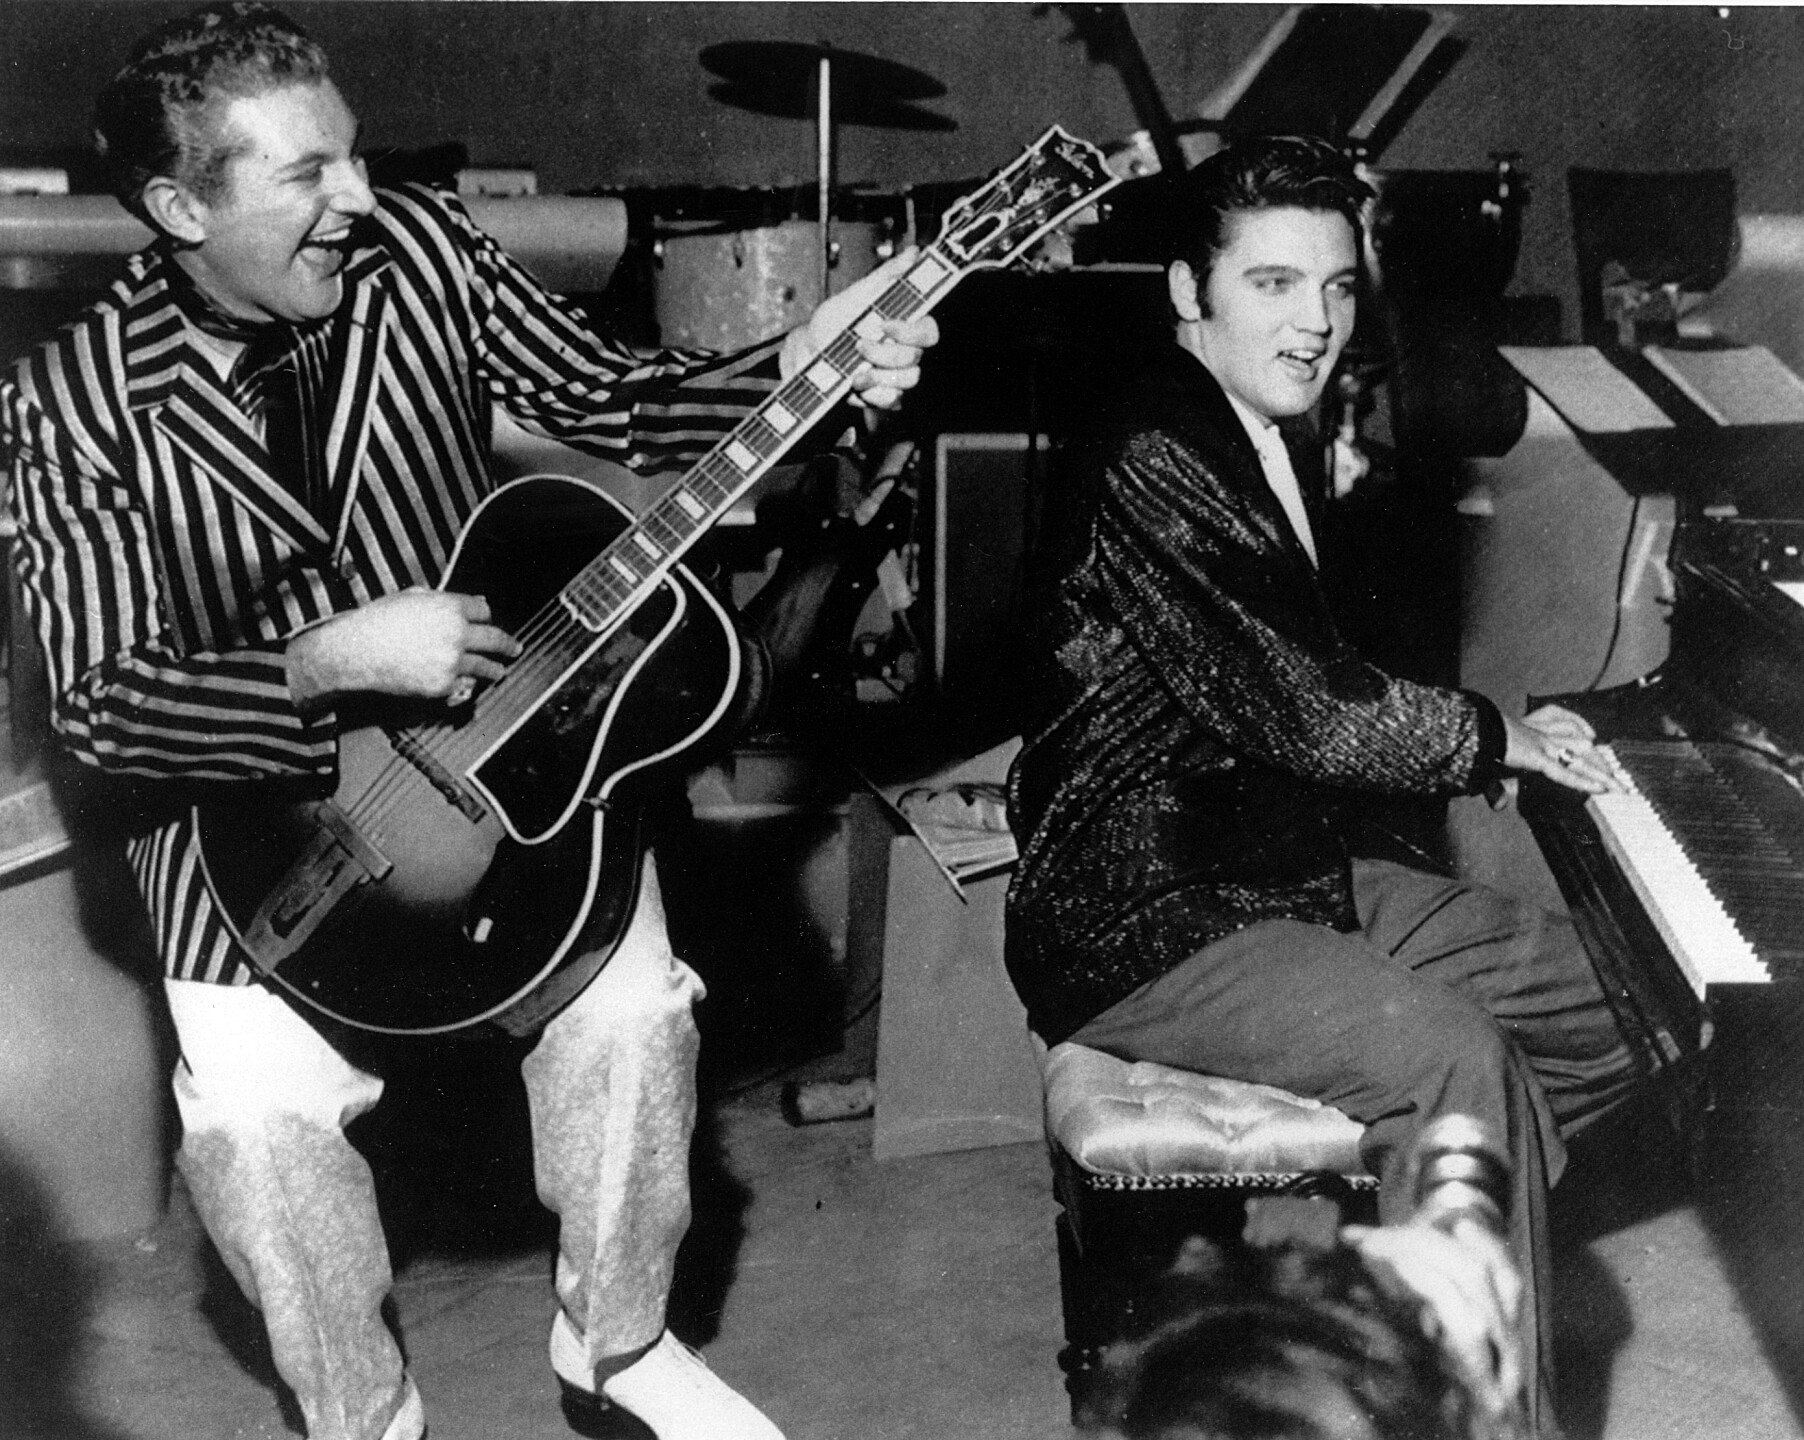 LIBERACE AND ELVIS PRESLEY